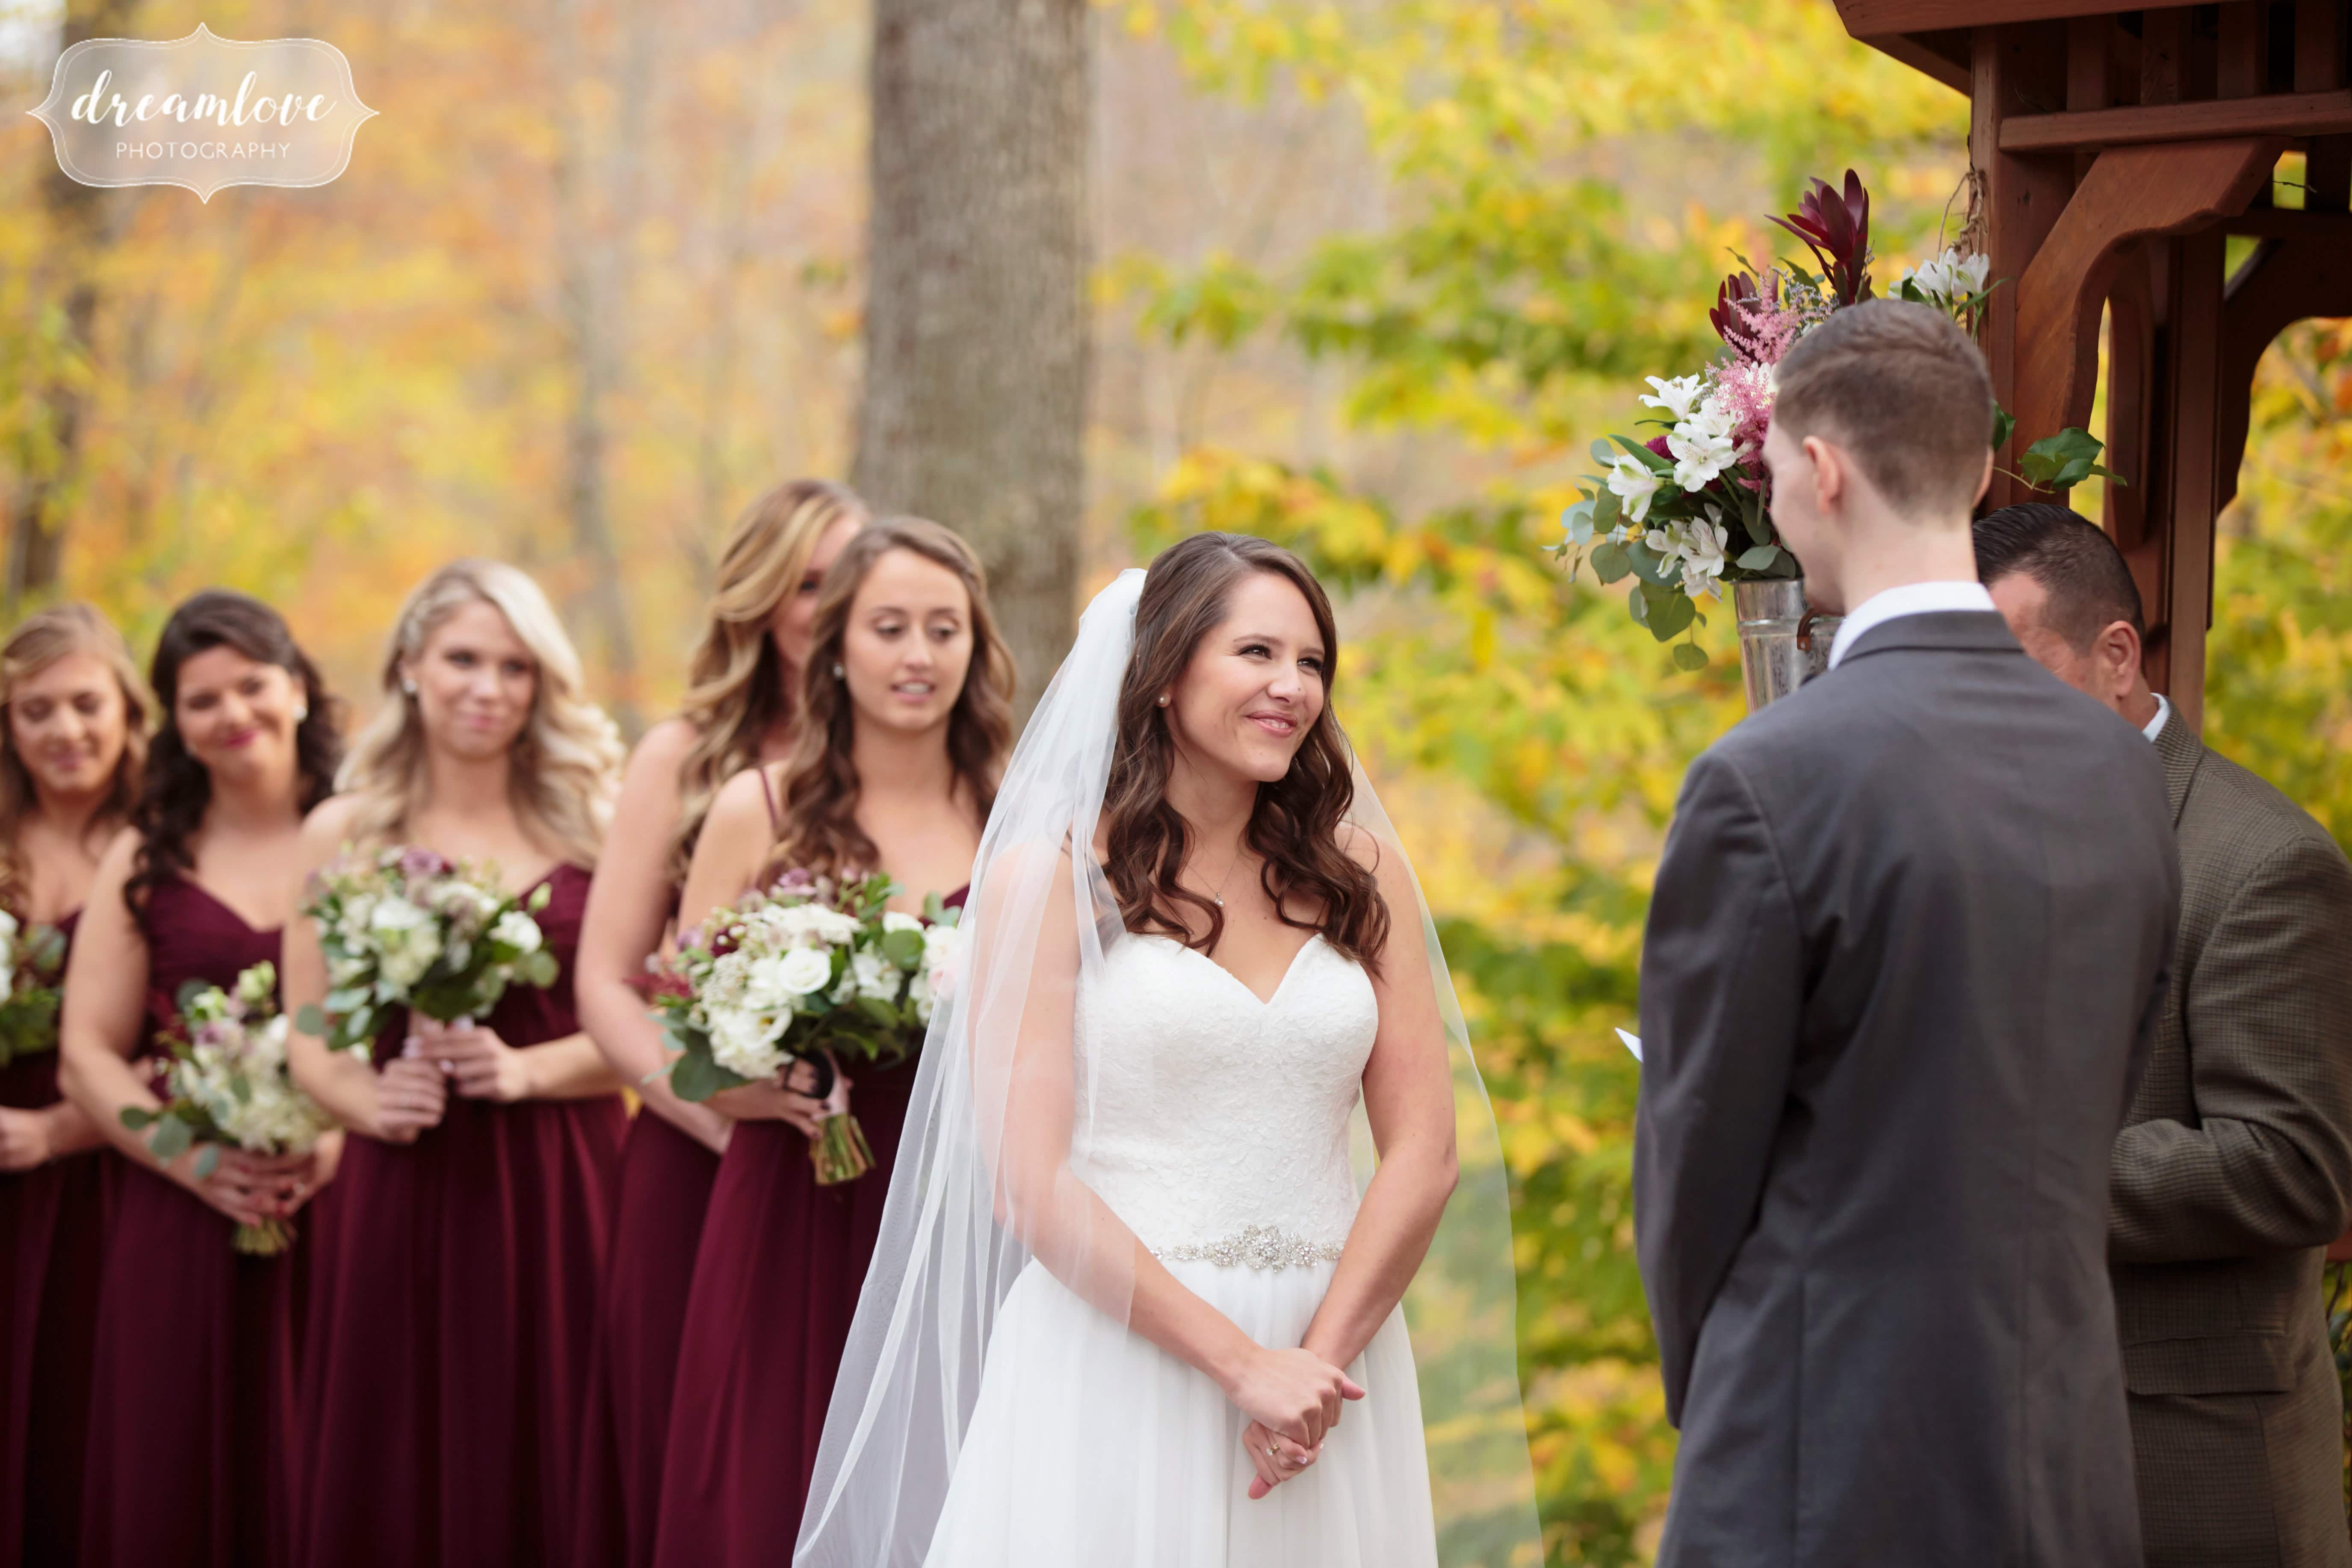 Candid wedding photography of this woodsy wedding ceremony in Middletown, CT.